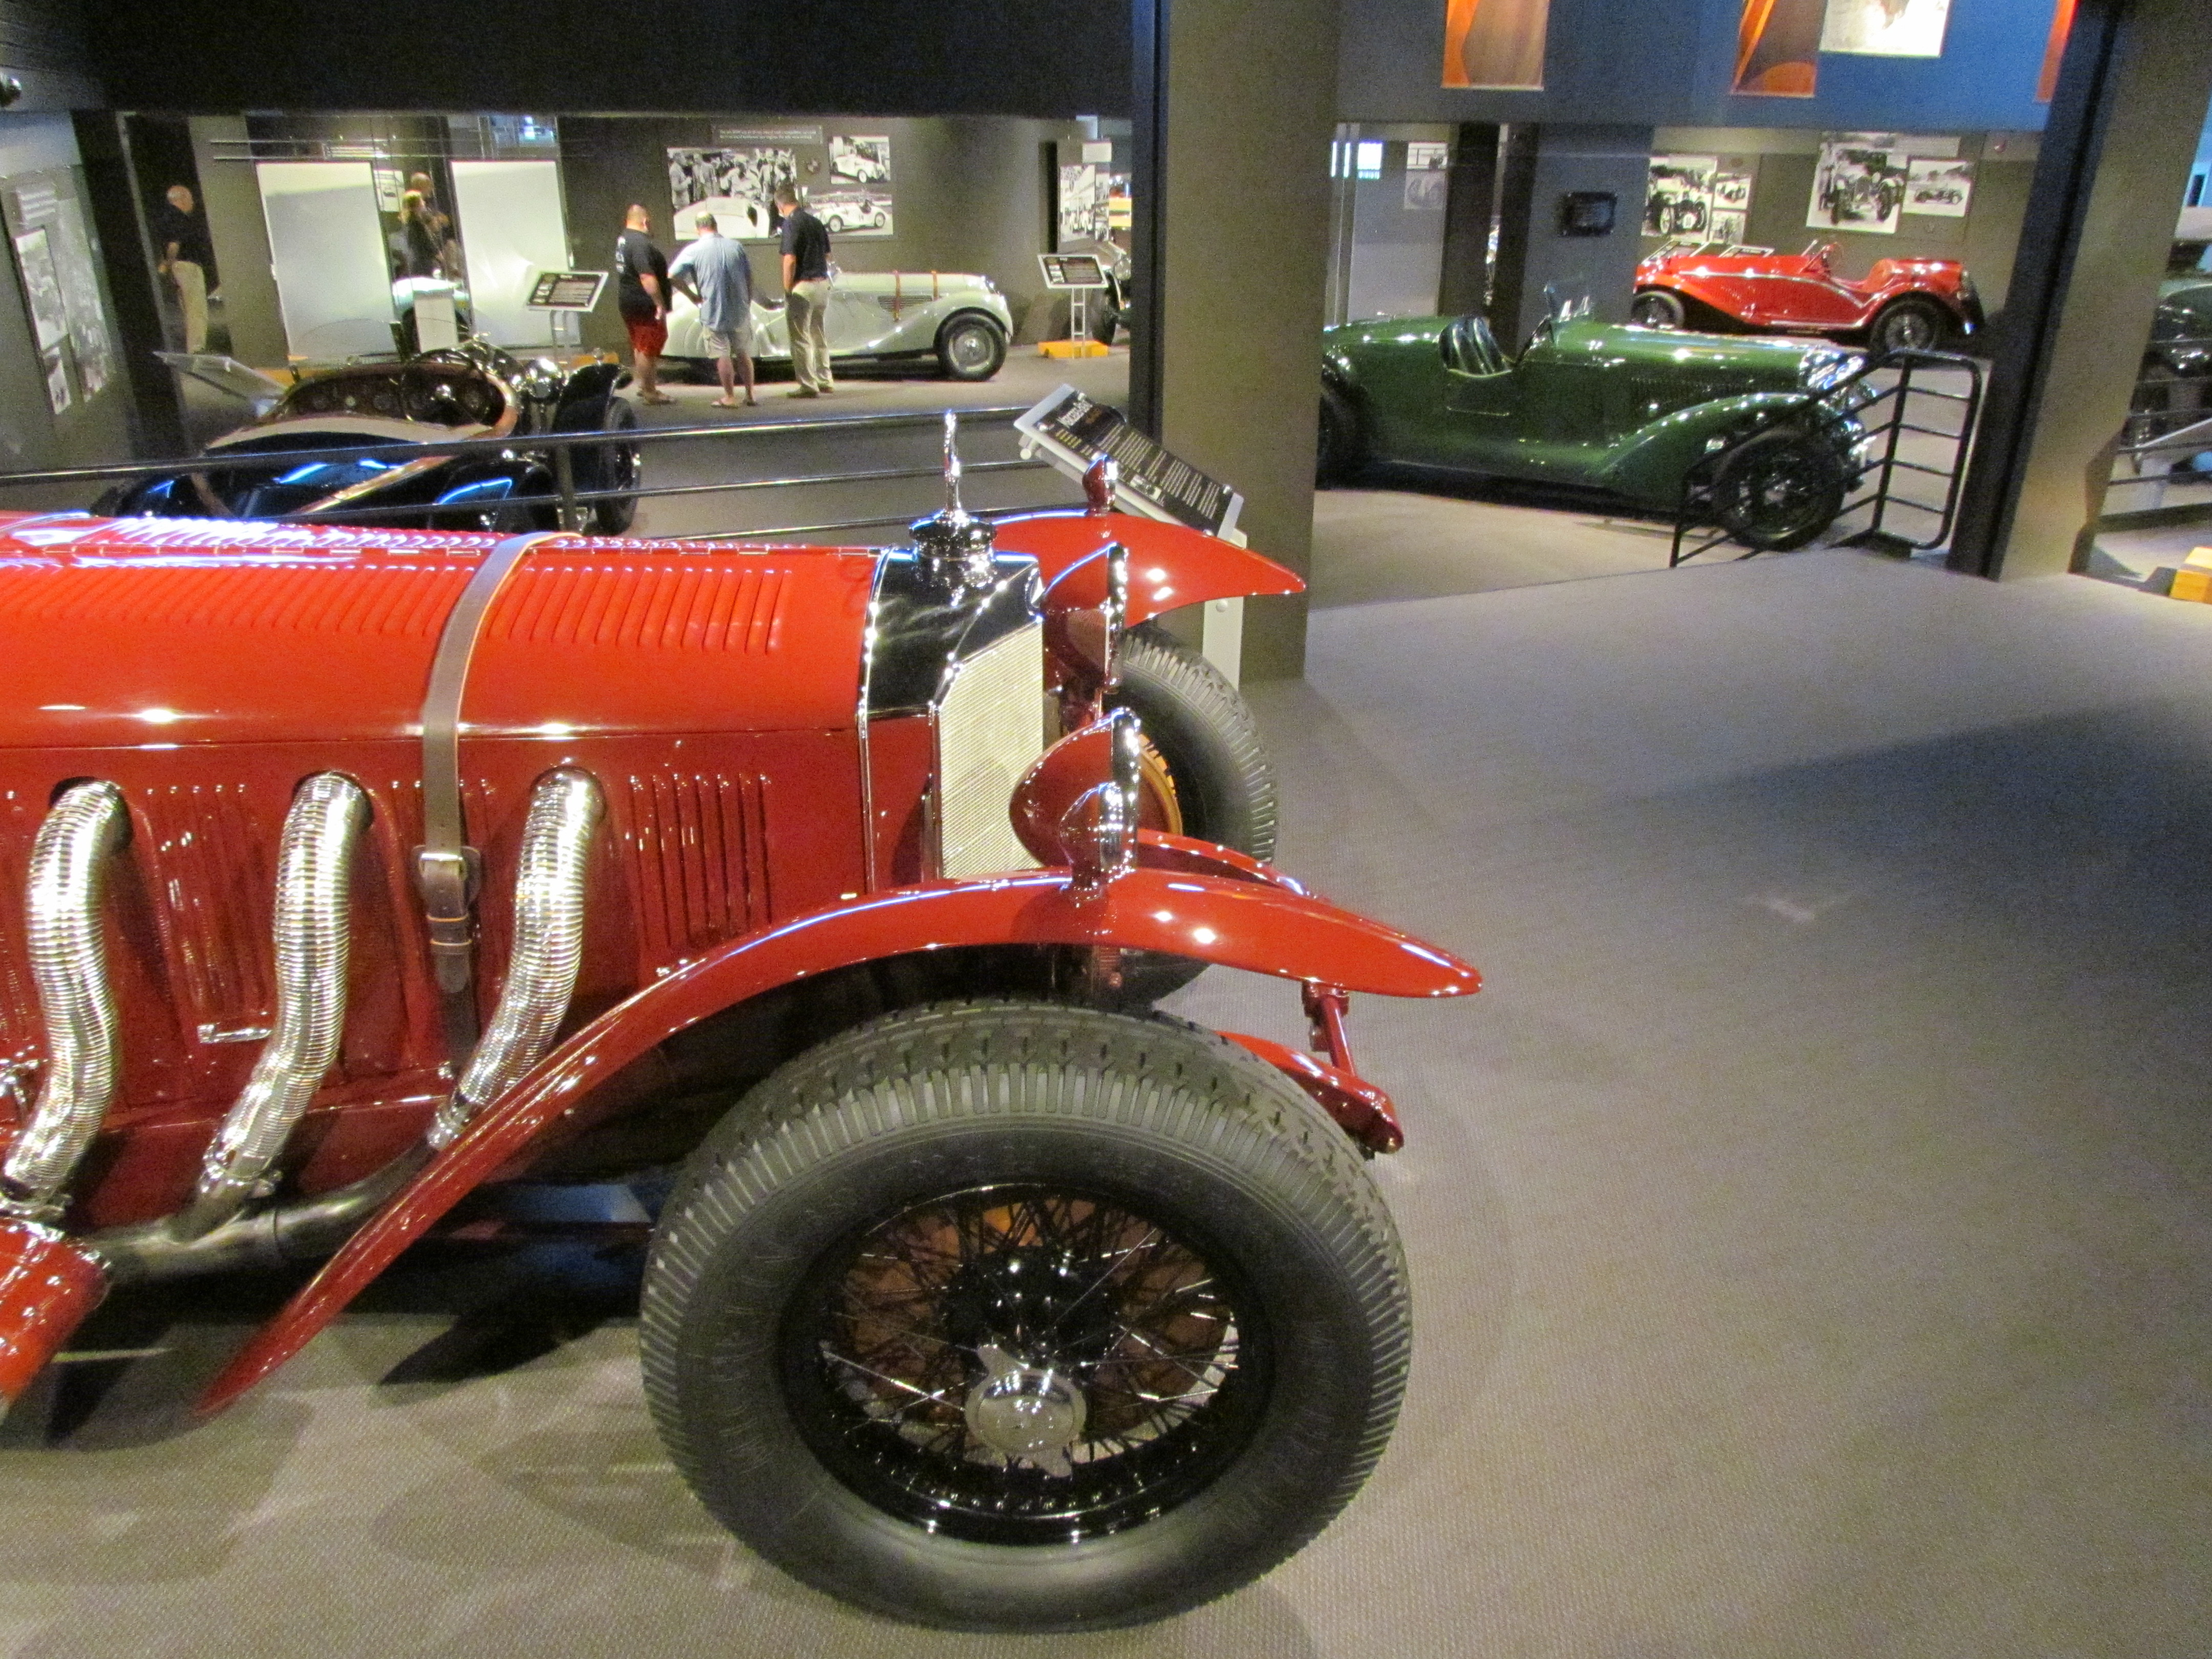 , There's also a terrific Porsche exhibit on the East Coast, ClassicCars.com Journal